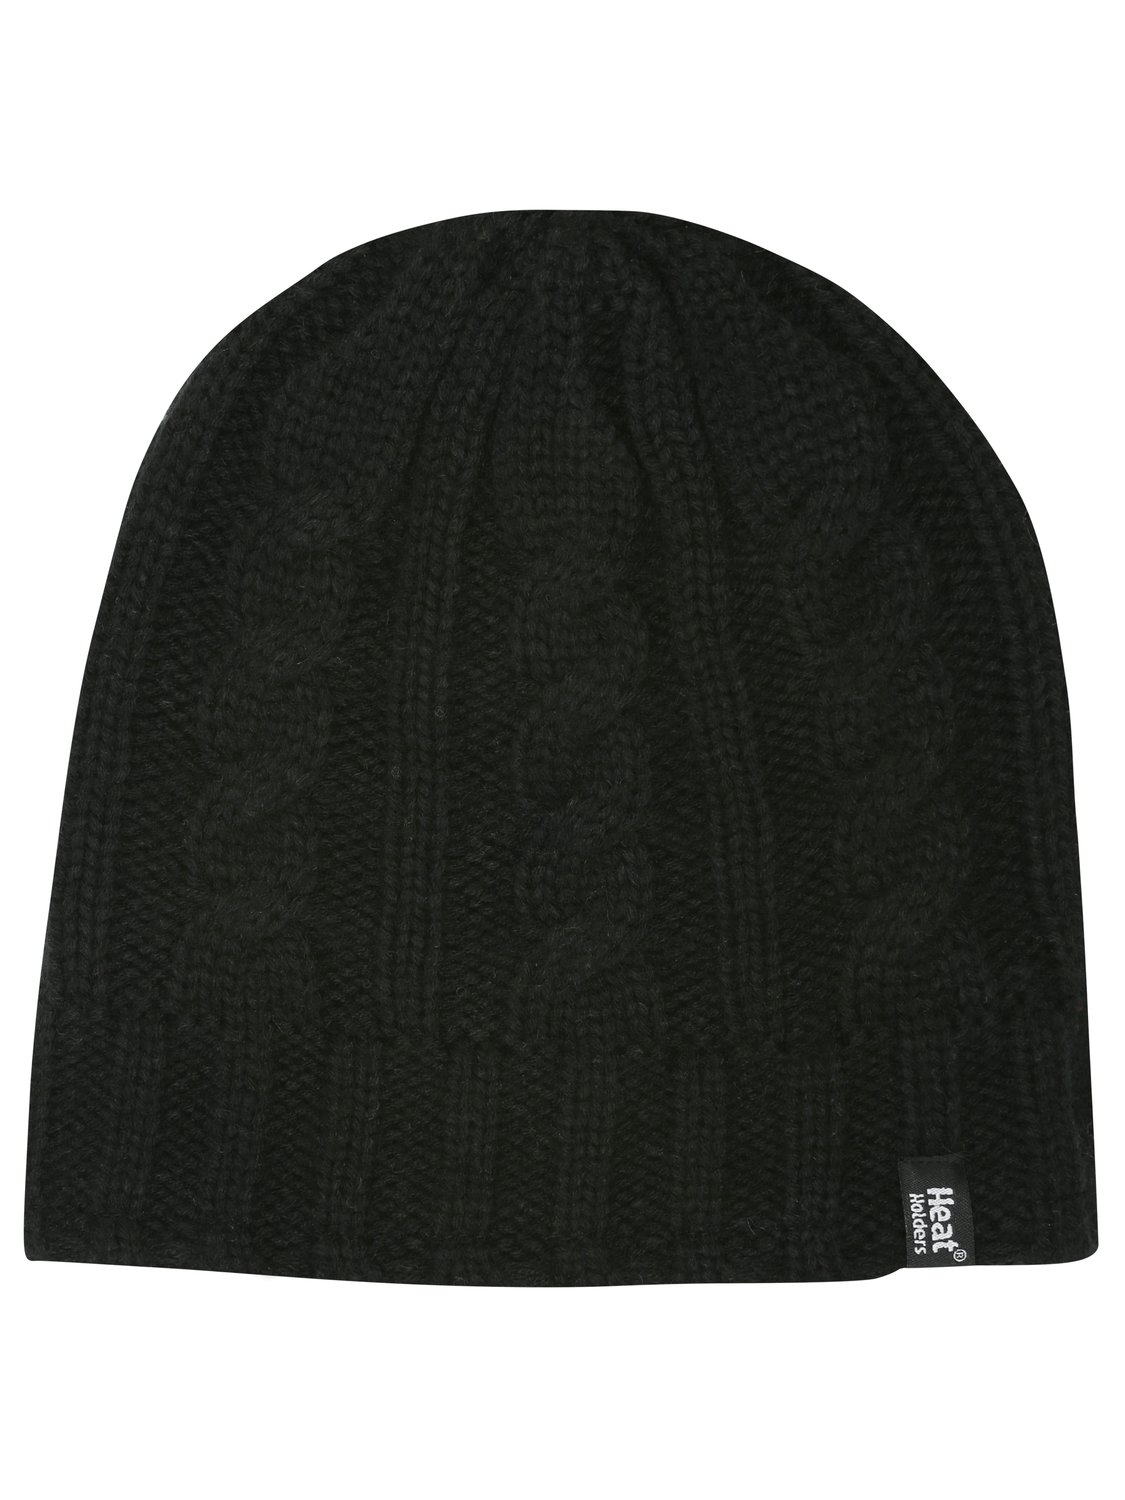 Ladies Cable Knit Thermal Cable Knit Heat Holders Winter Woolly Hat   Black